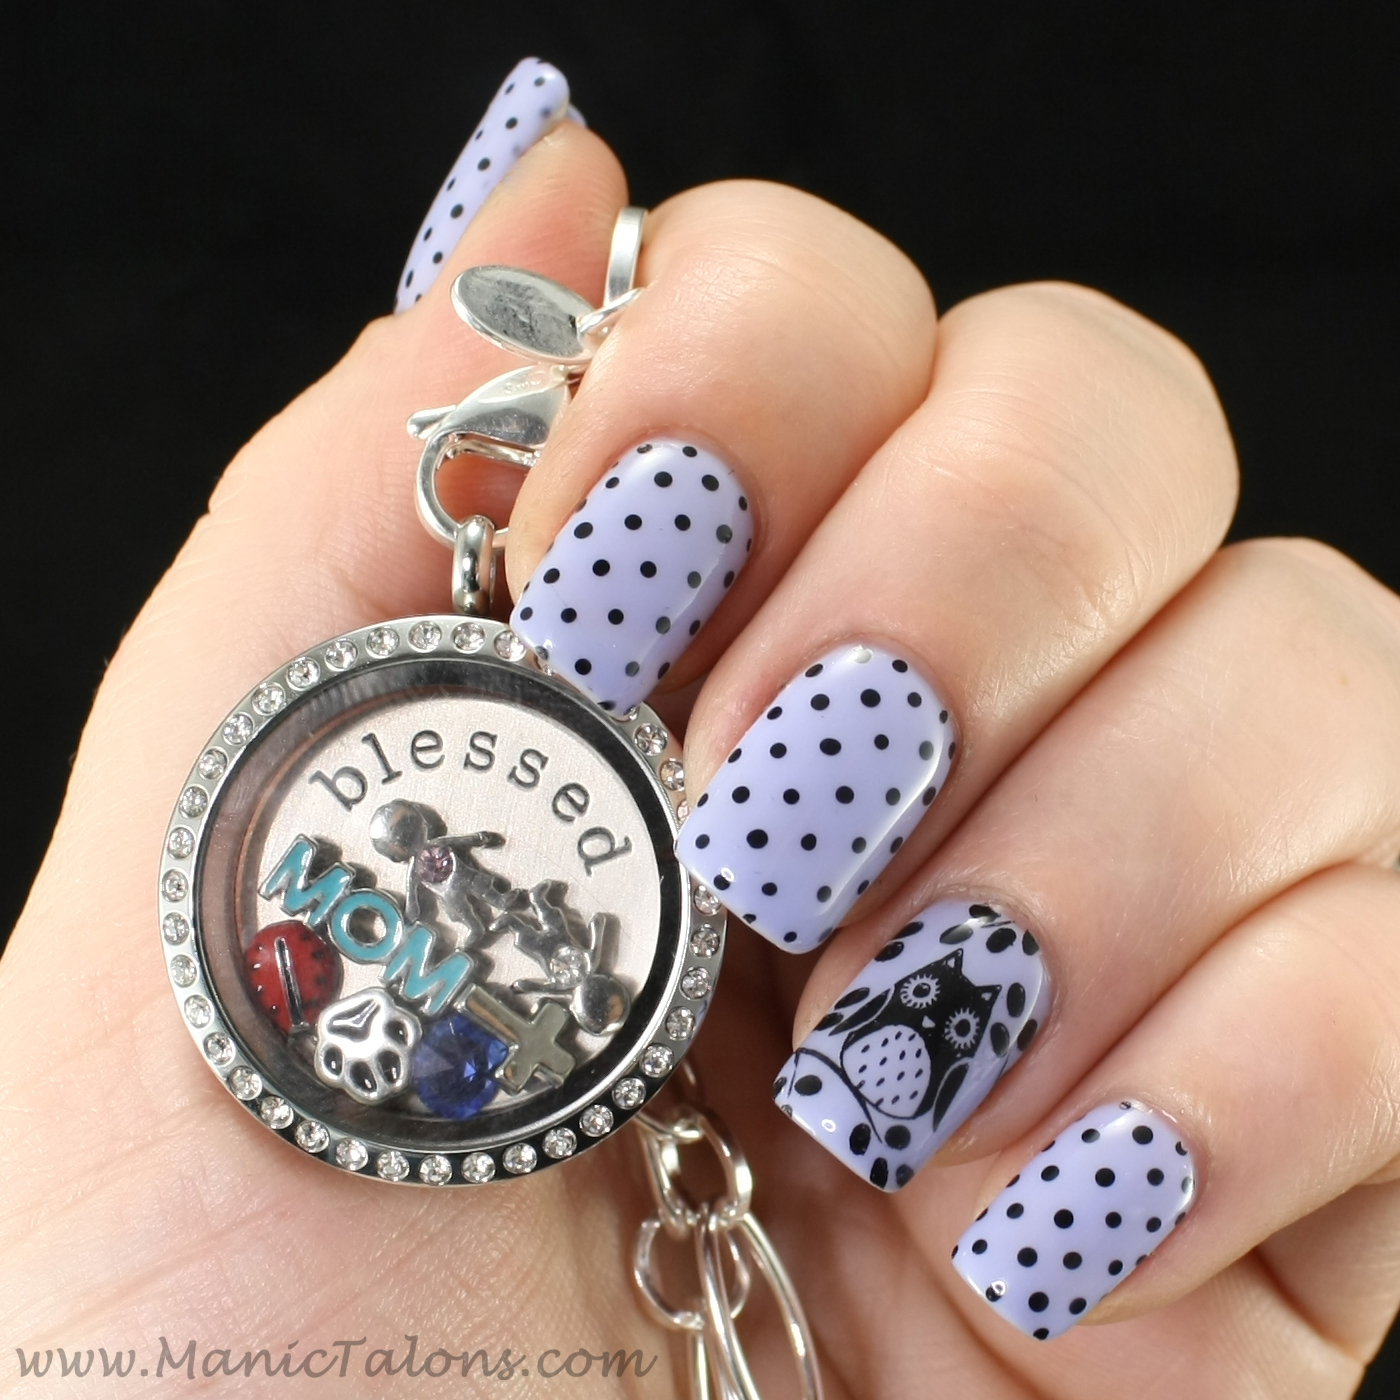 Dots and Owls Nail Art